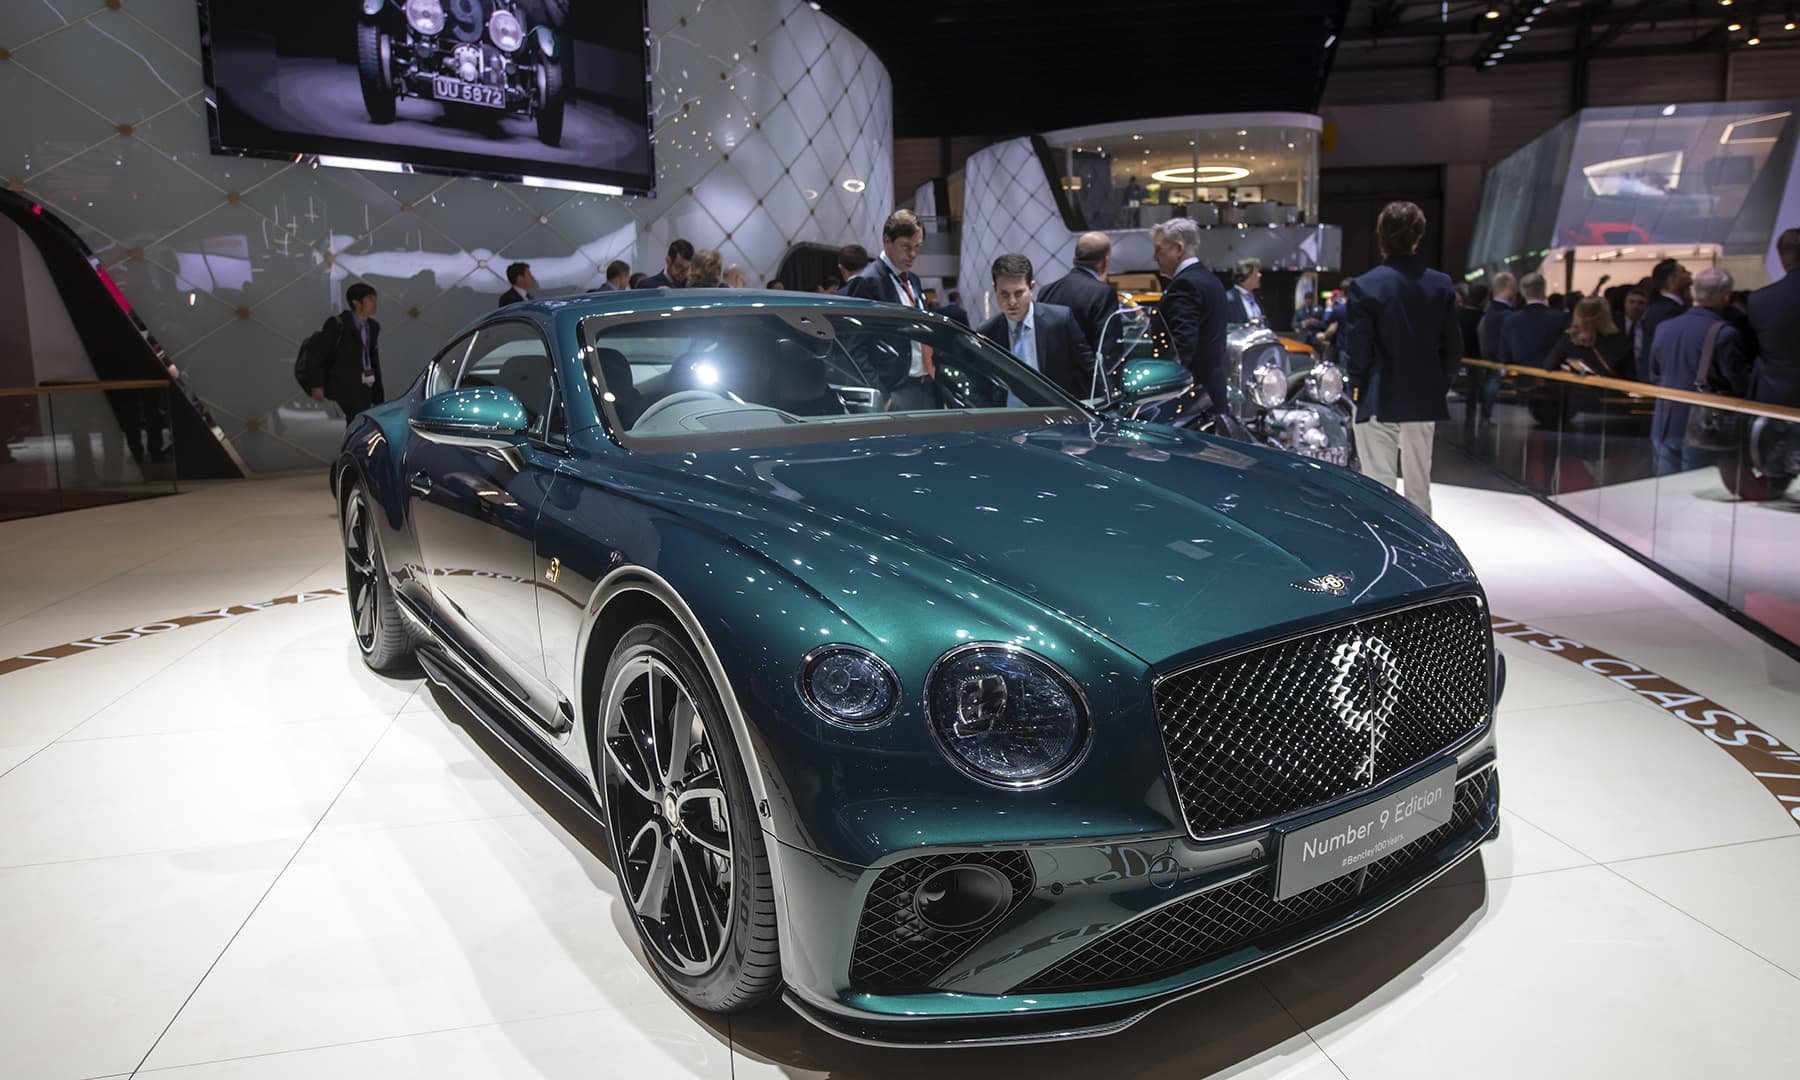 The new Bentley Motors 'Continental GT Number 9 Edition by Mulliner' car is presented during the press day at the Geneva International Motor Show. — AP